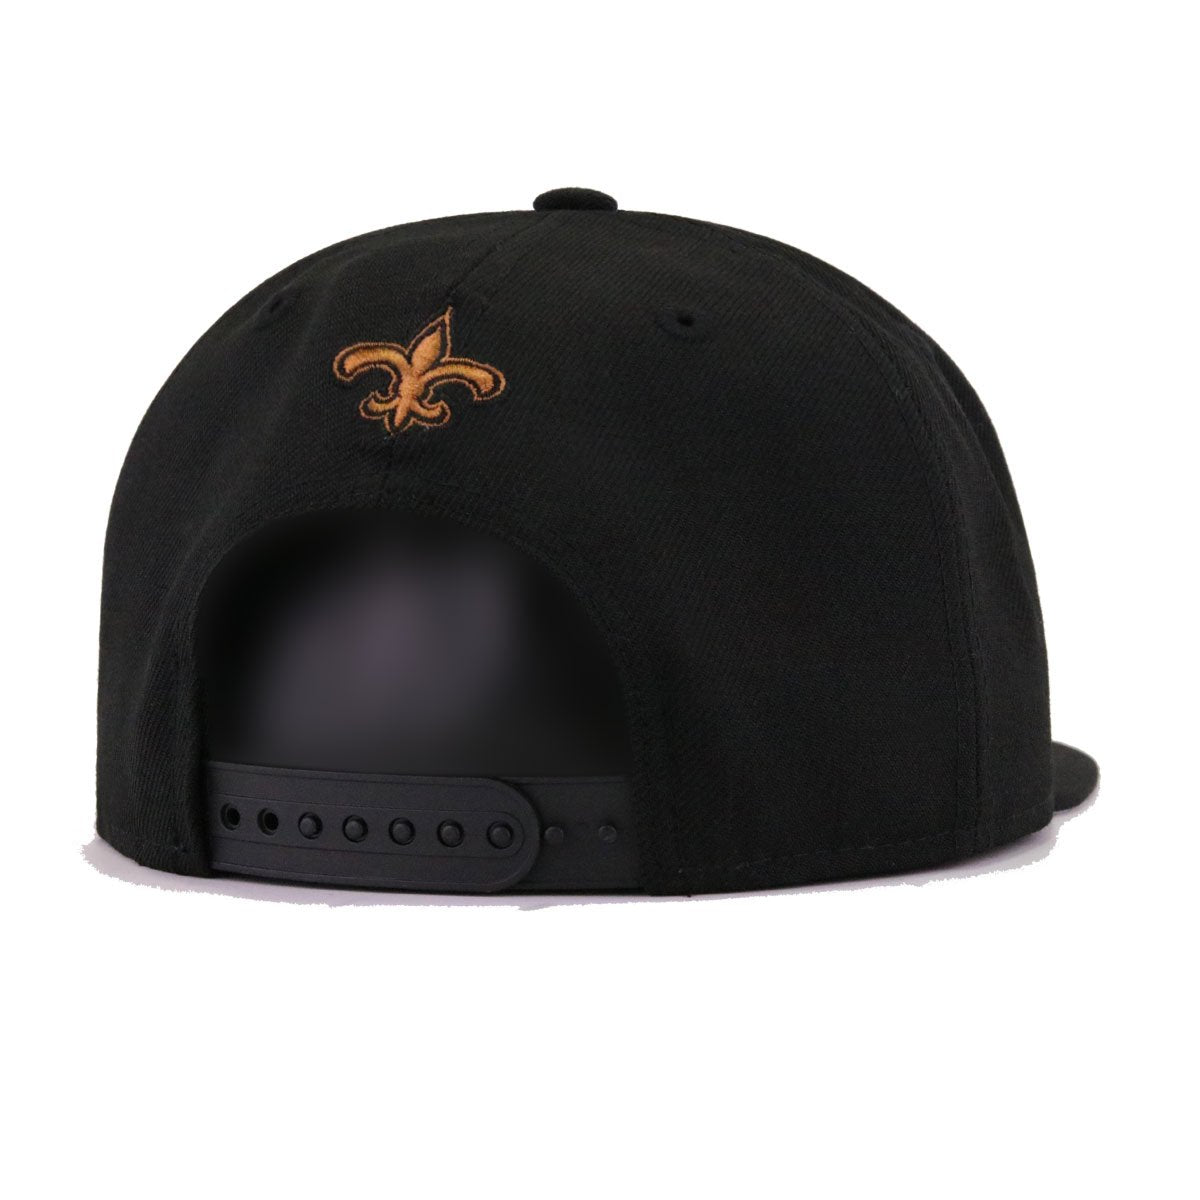 New Orleans Saints Black Dark Tan New Era 9Fifty Snapback